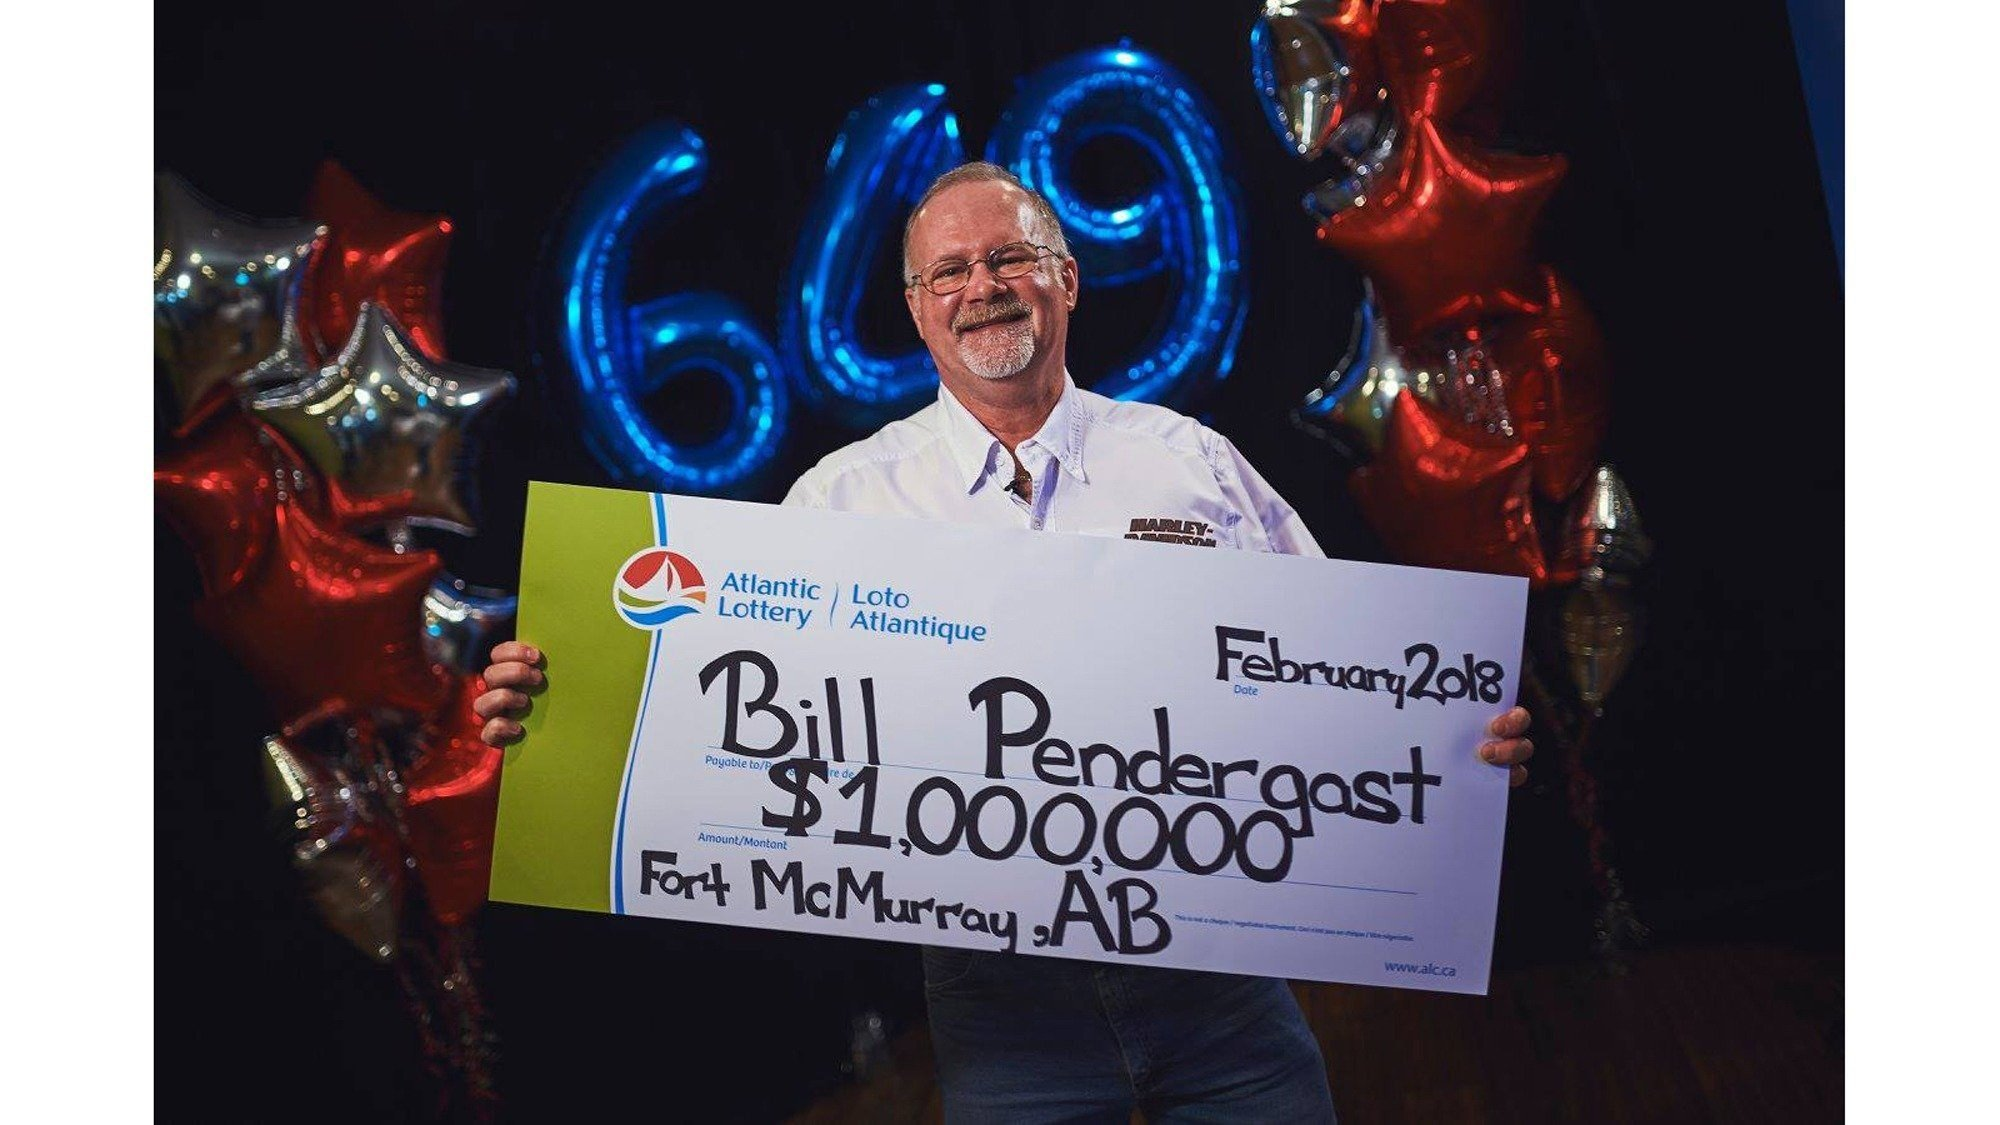 Bill Pendergast has spent the last two years rebuilding his home, which burnt down when a wildfire raged through Fort McMurray, Alberta. Now, he is $1 million richer and able to finish restoring his family home thanks to the Atlantic Lotto.